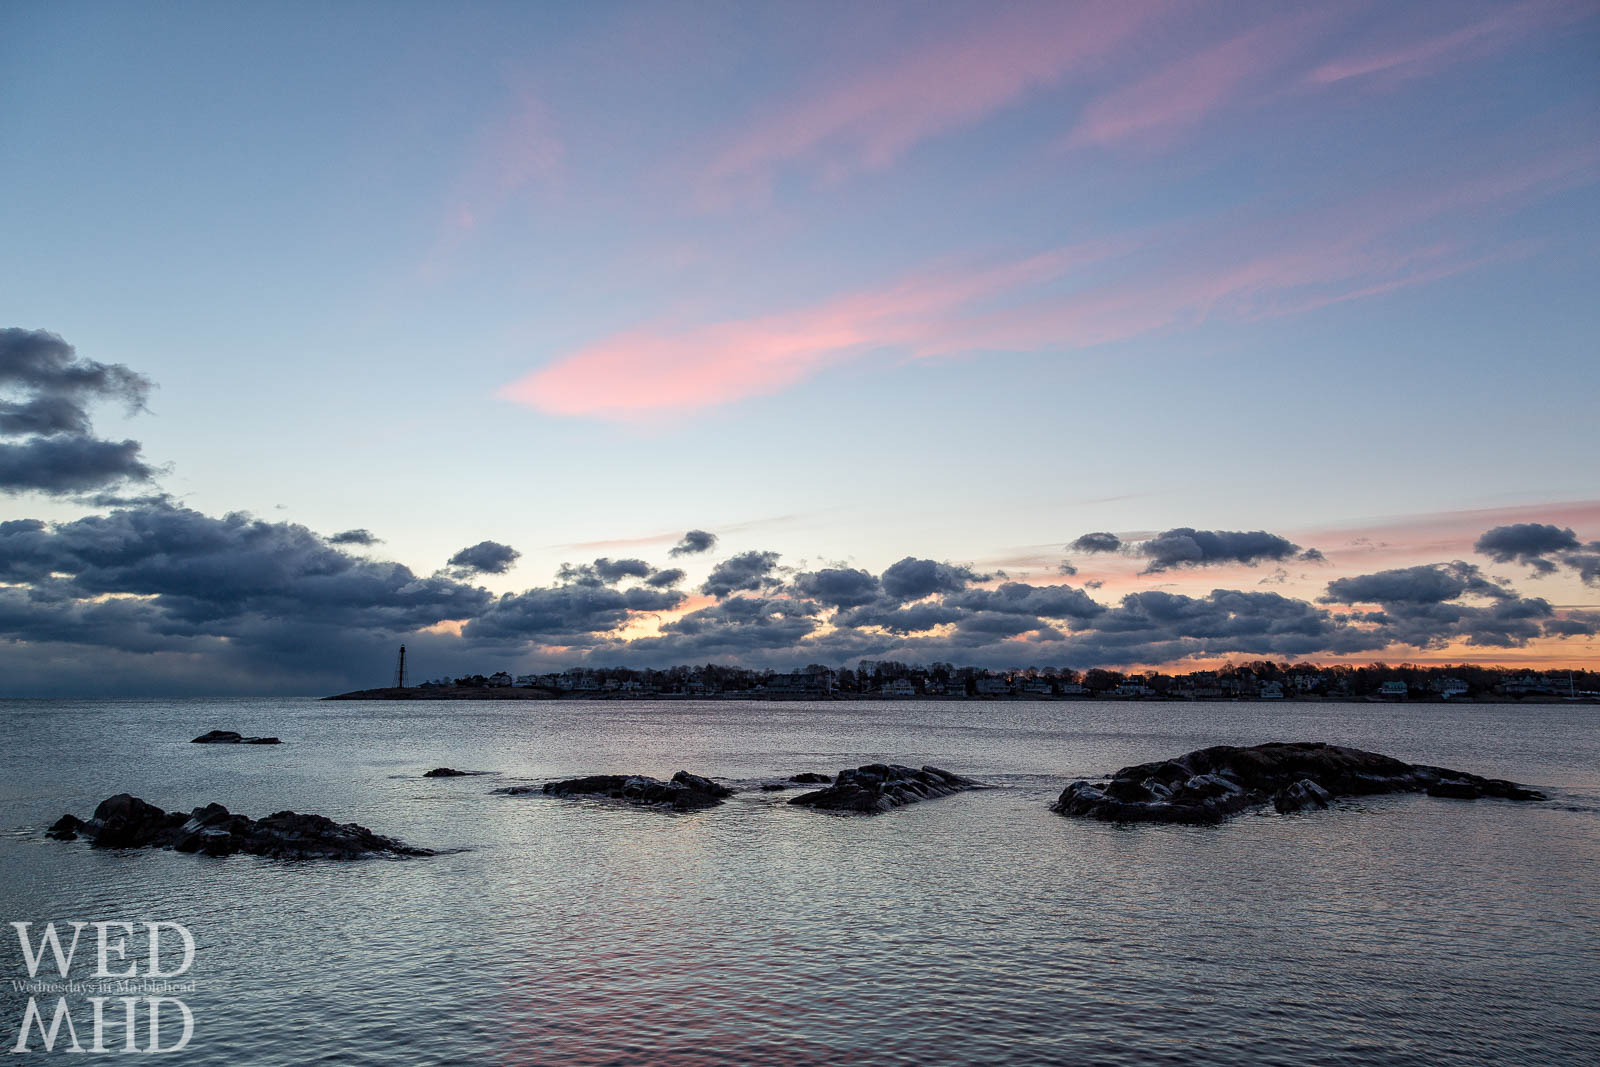 Dawn of a New Year of Wednesdays in Marblehead